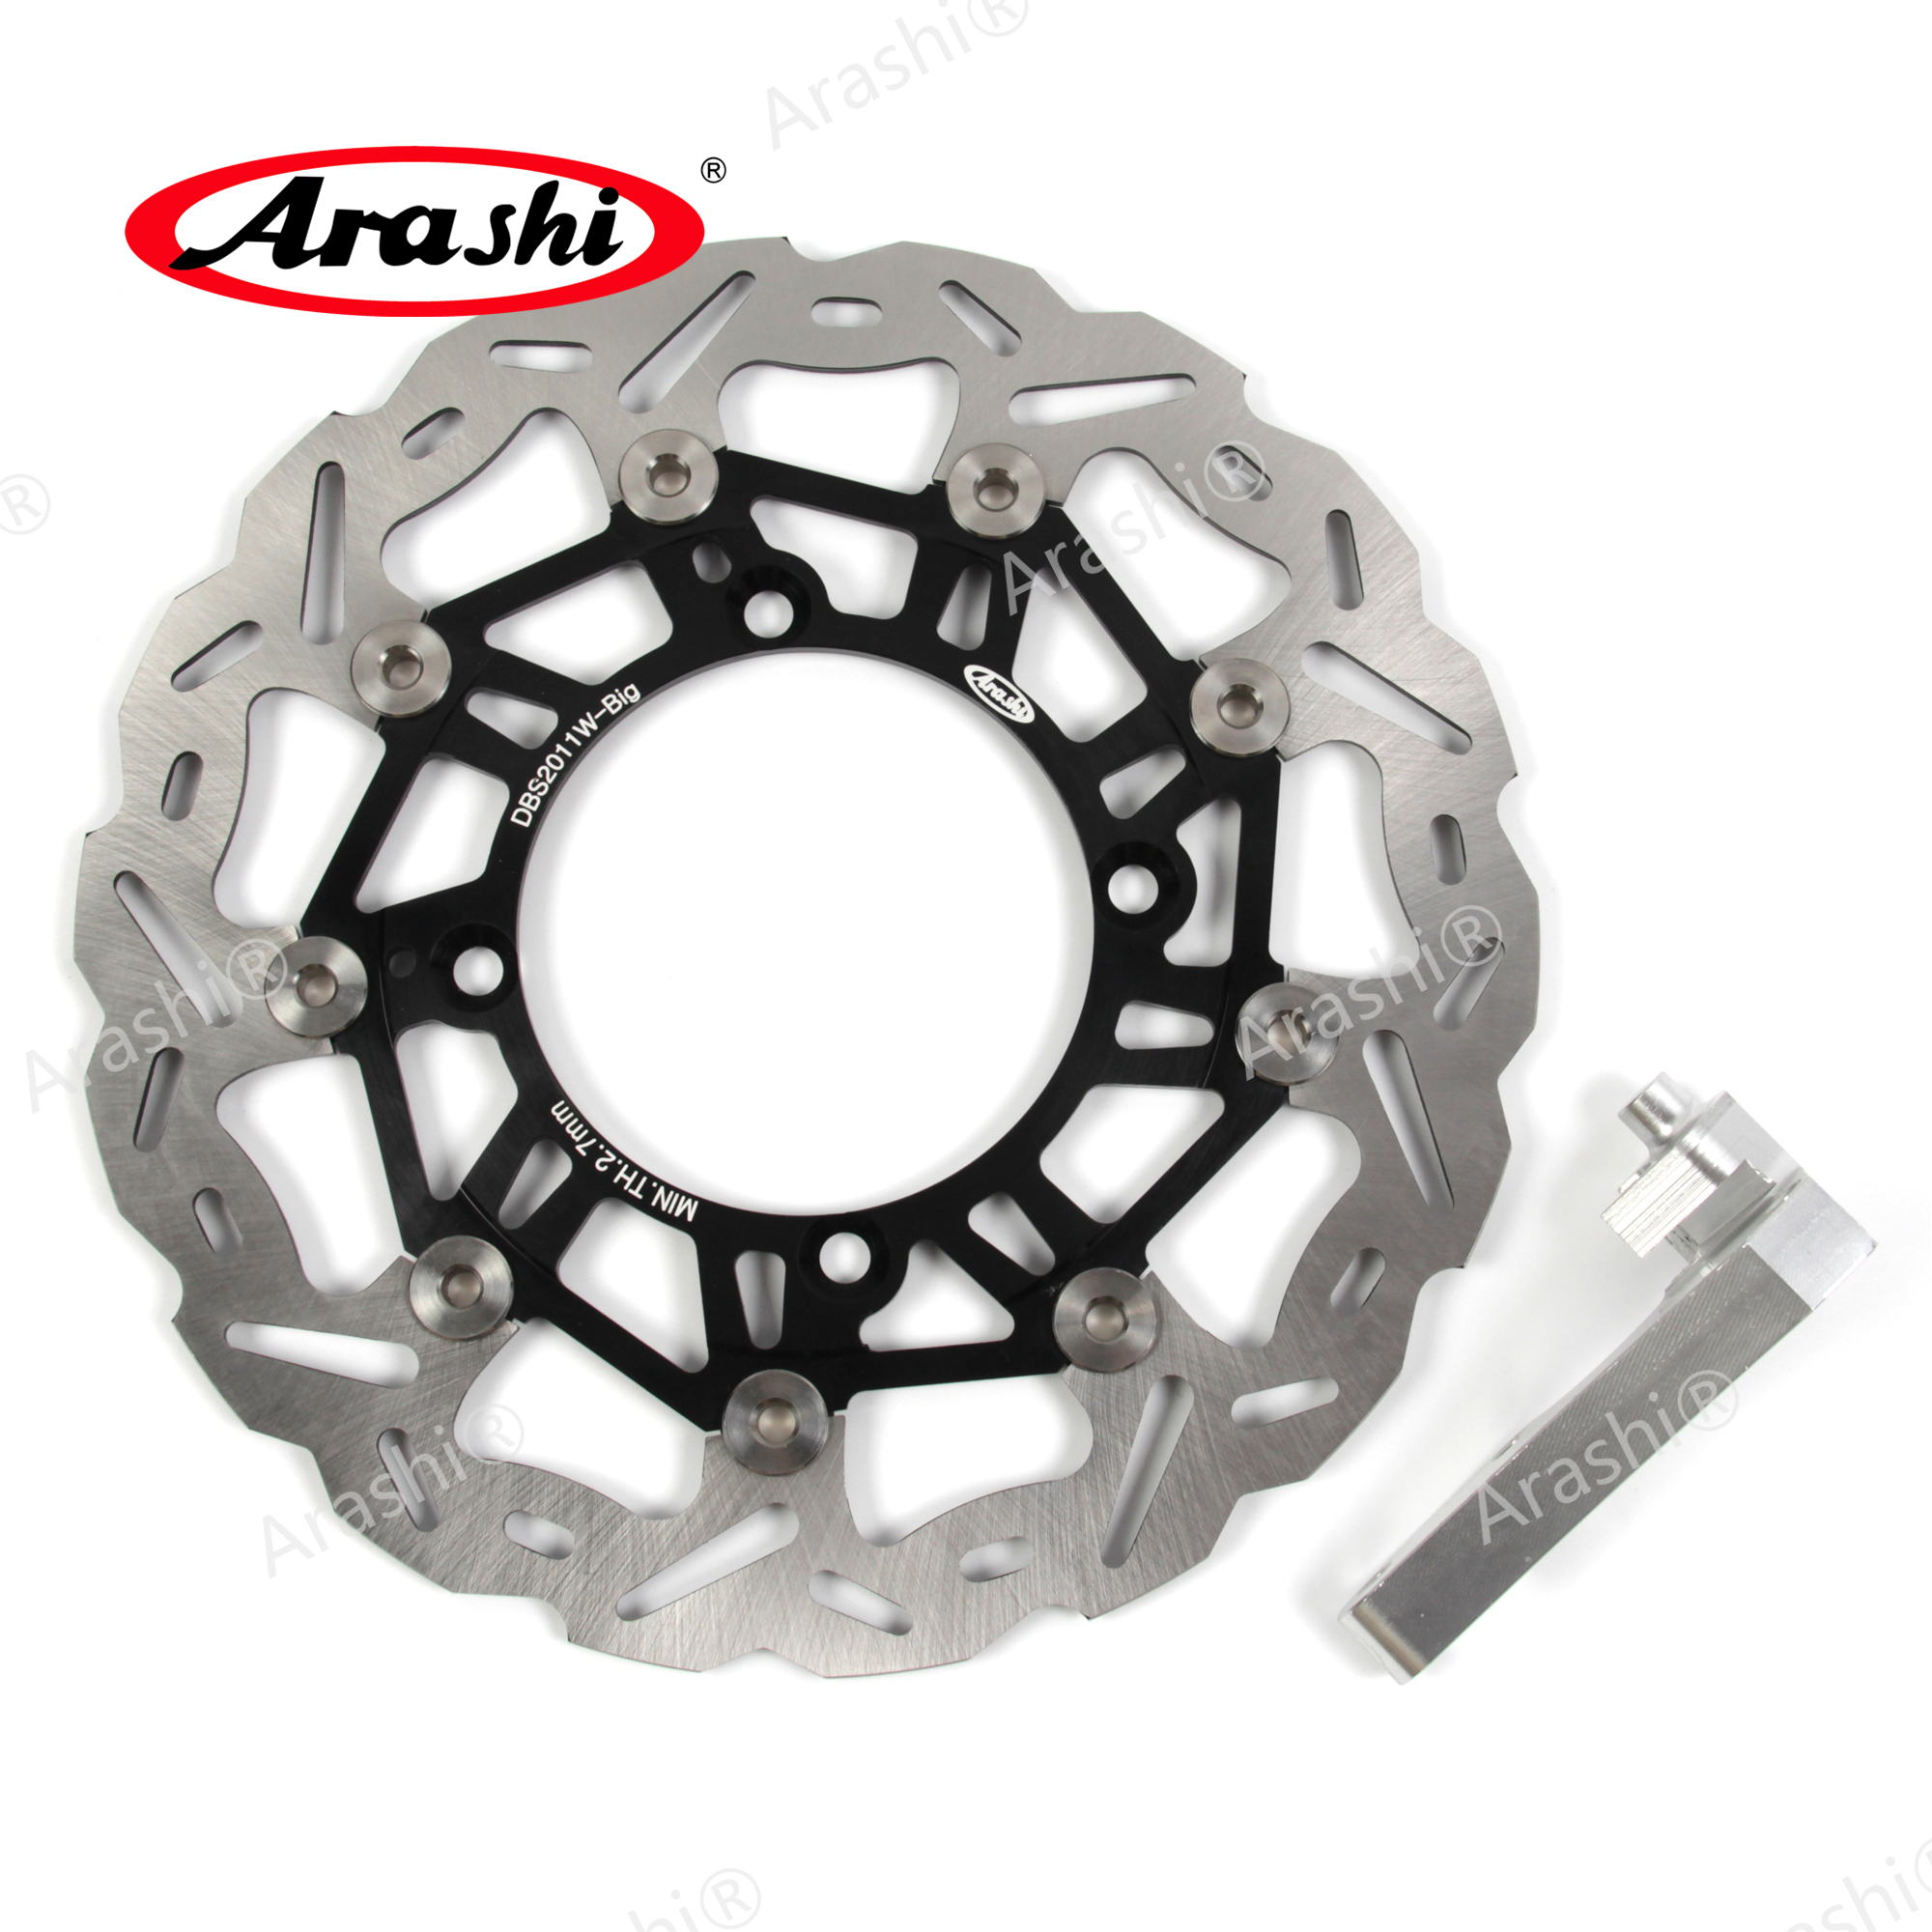 Arashi 1PCS For KAWASAKI KX125 KX250 2006 2007 2008 CNC Floating Front Brake Disc Brake Rotors Motorcycle <font><b>Parts</b></font> <font><b>KX</b></font> <font><b>125</b></font> <font><b>KX</b></font> 250 image